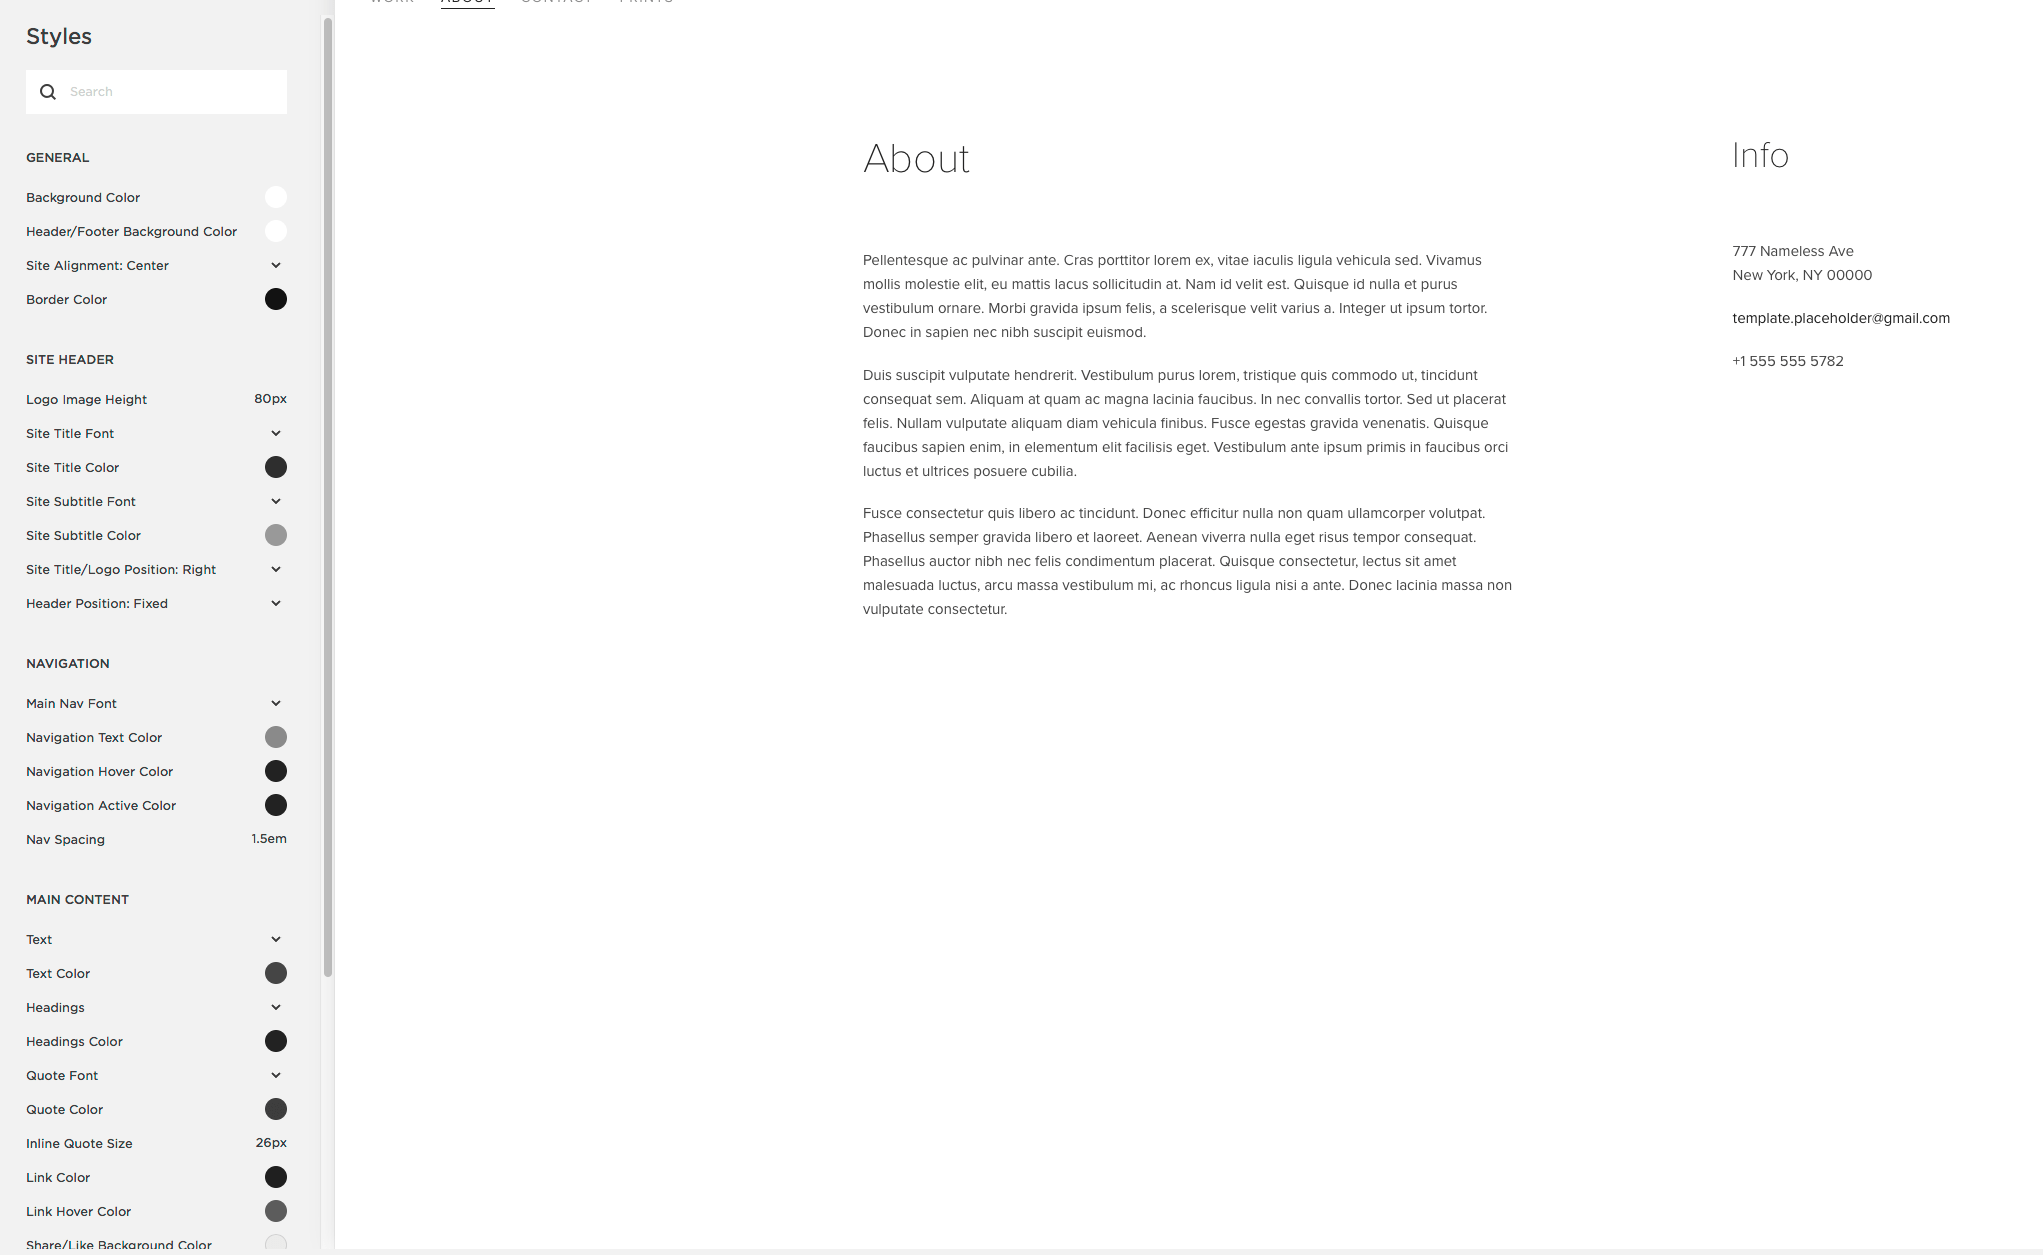 A screenshot showing Squarespace styles menus